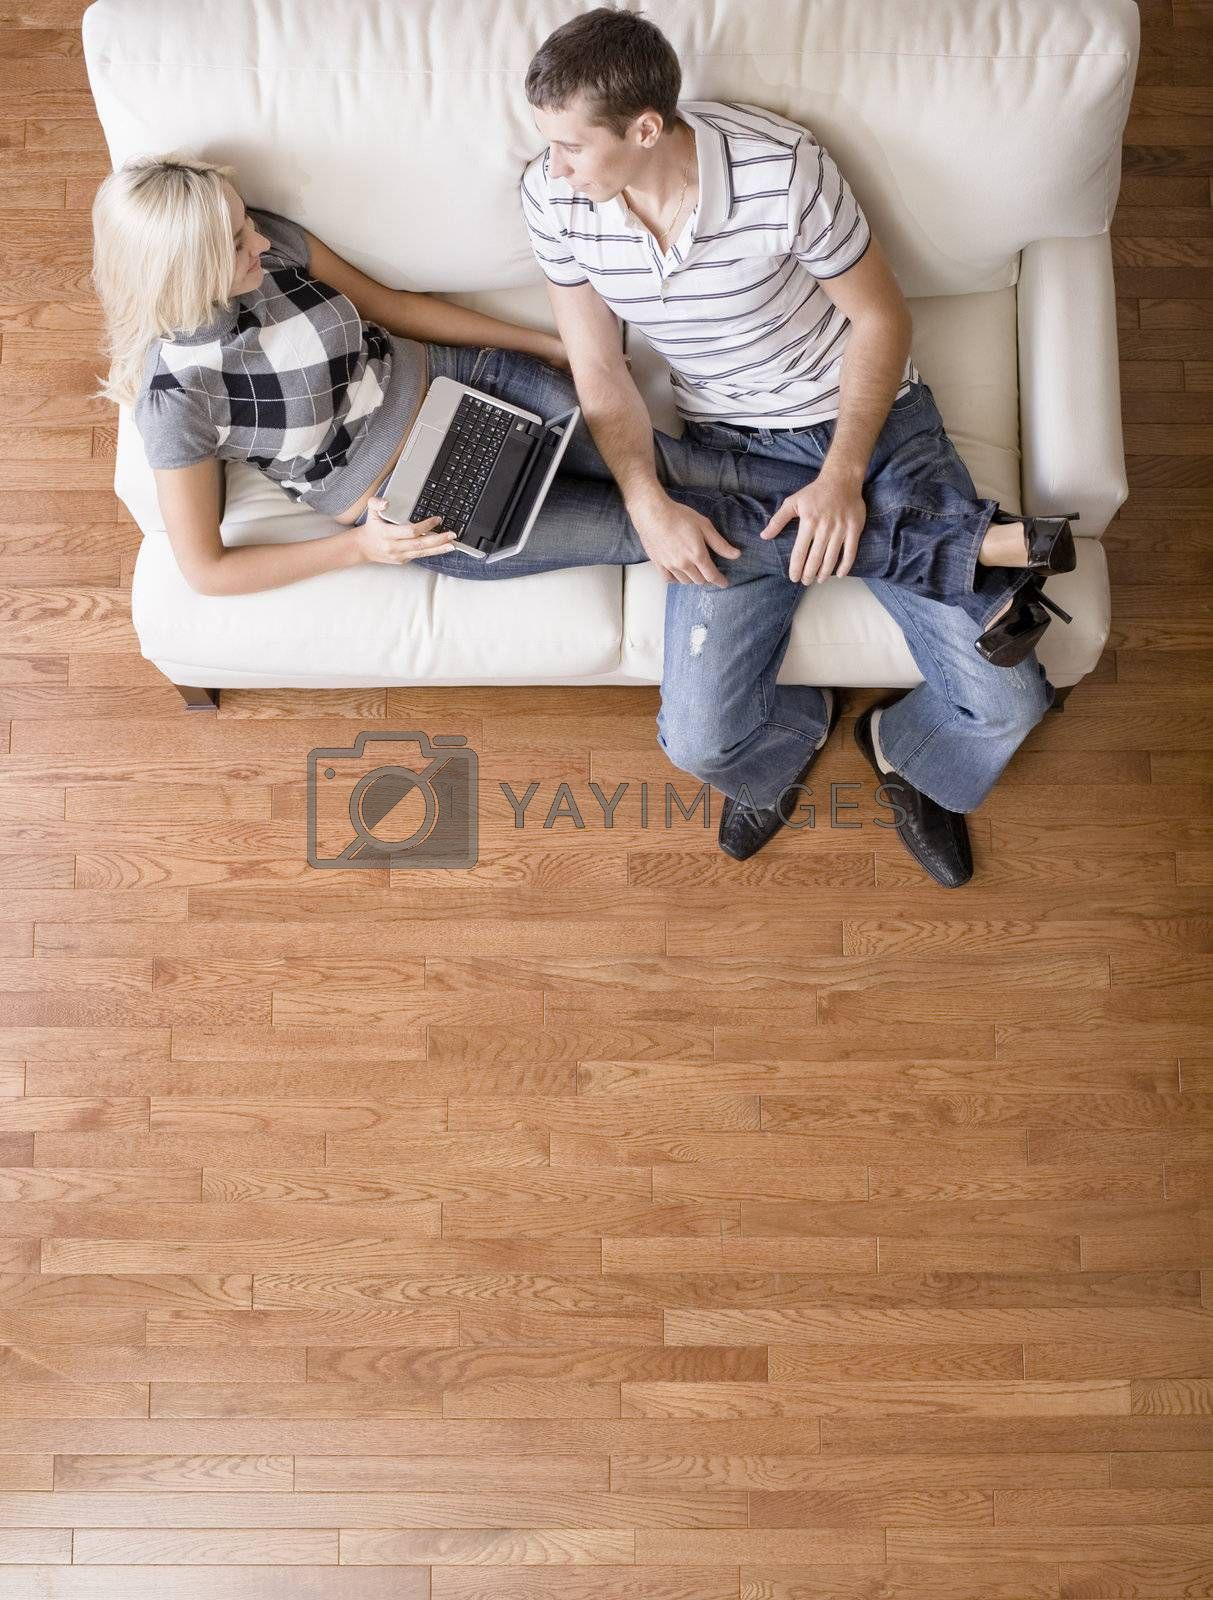 Full length overhead view of couple relaxing together on white couch, with woman using laptop and stretching out with her legs in the man's lap. Vertical format.